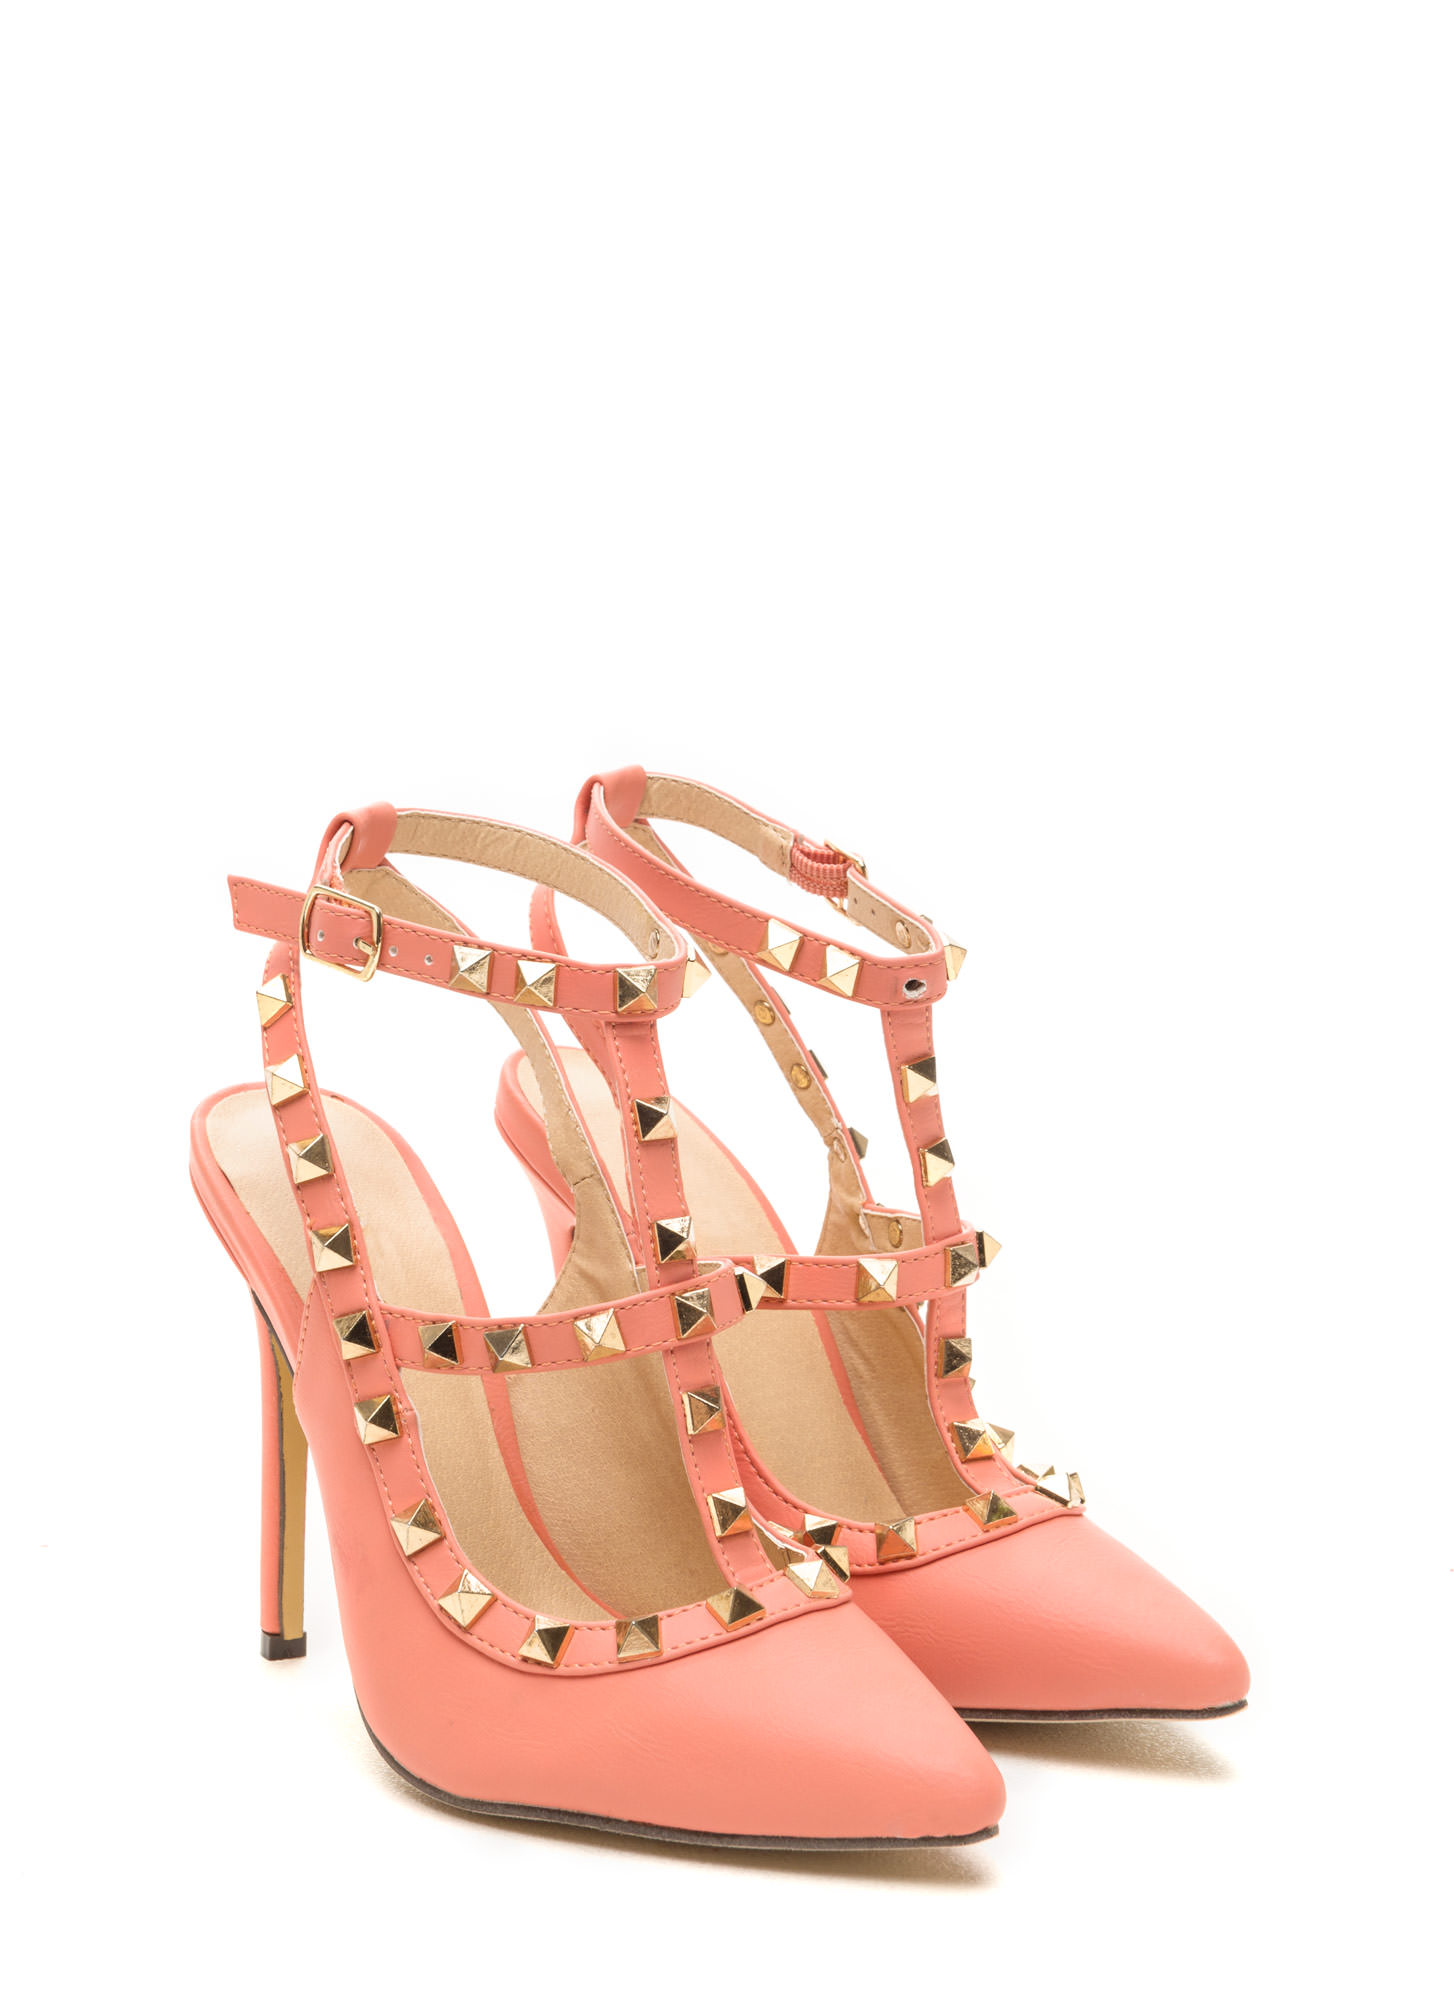 Stud-y Up Faux Leather Heels CORAL